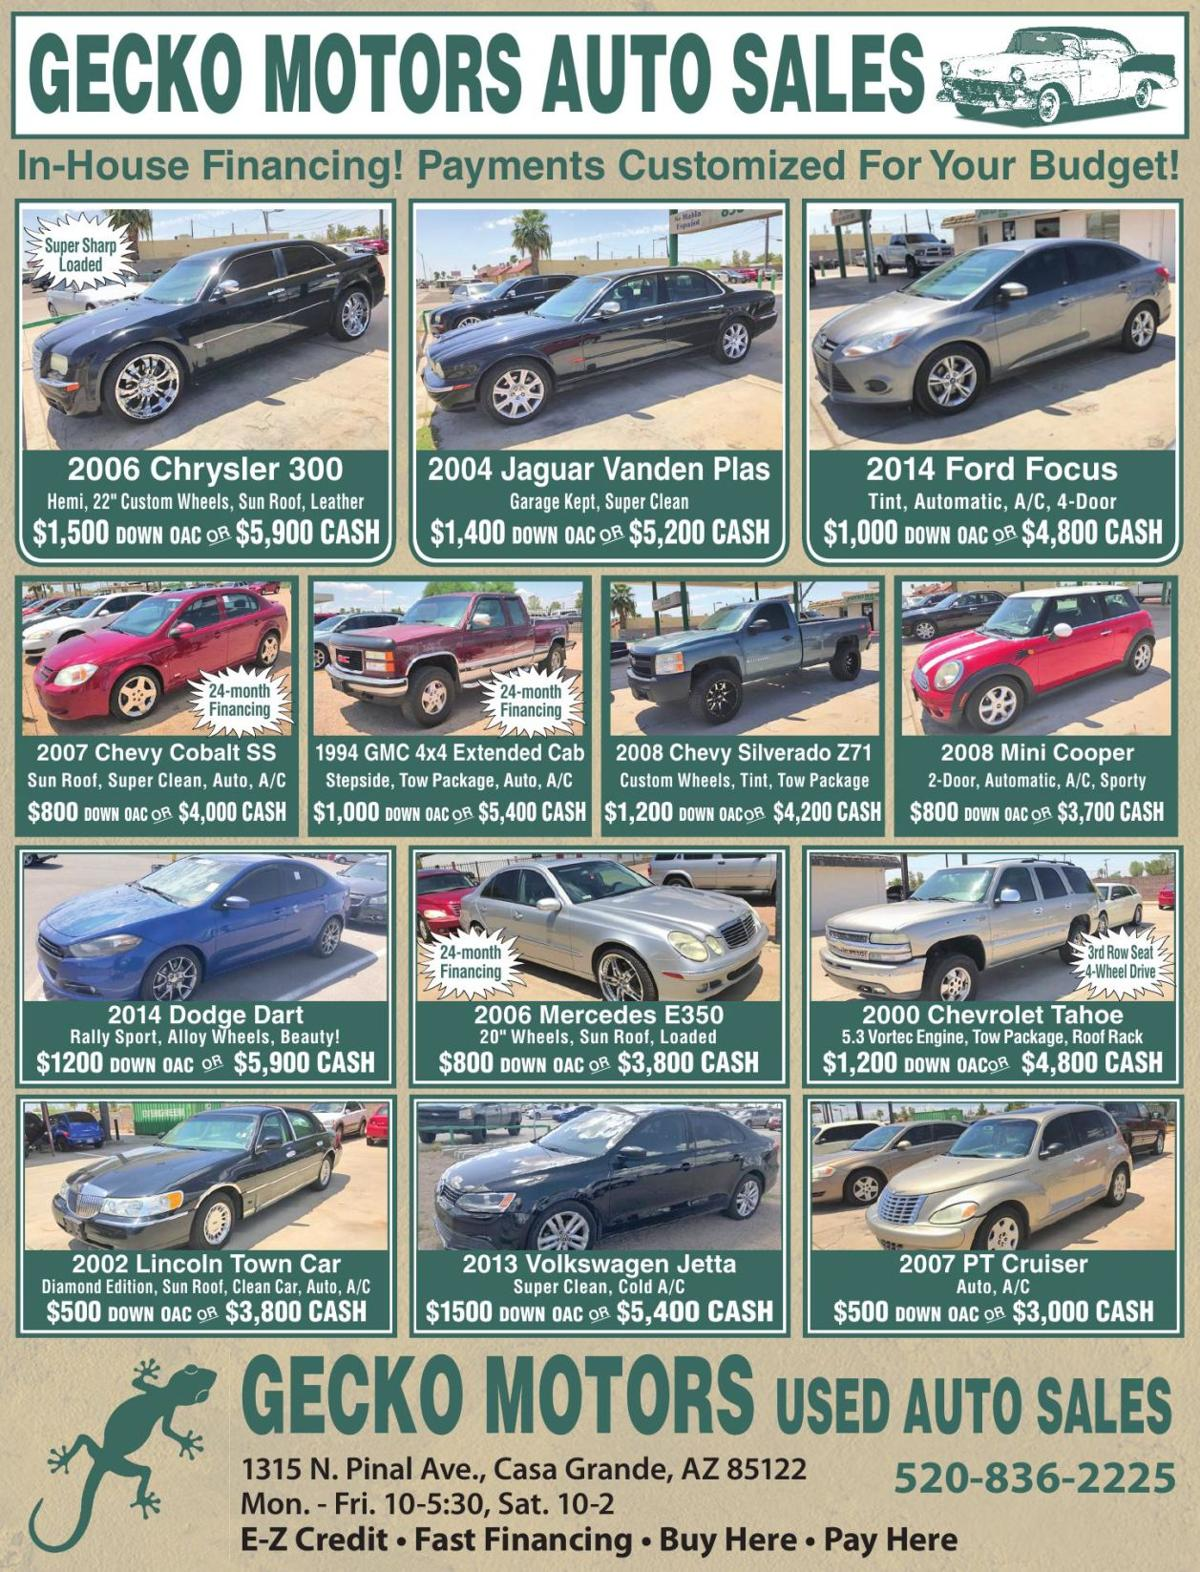 GECKO MOTORS AUTO SALES